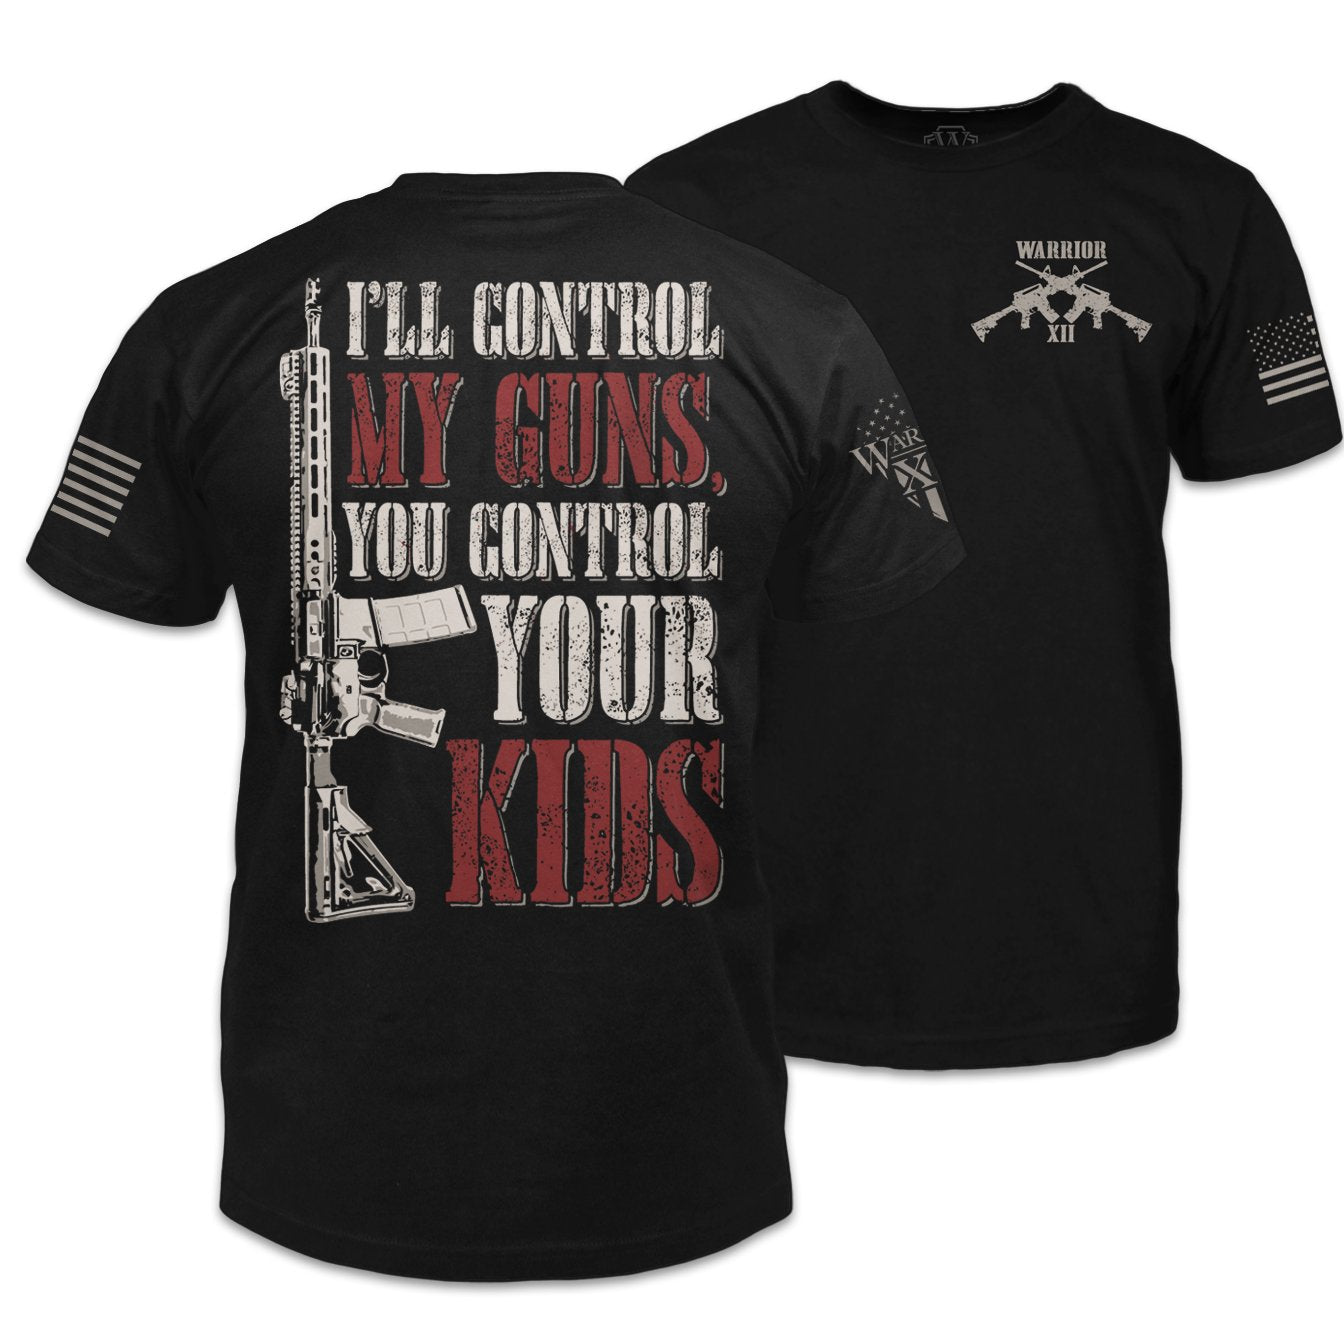 I'll Control My Guns Shirt